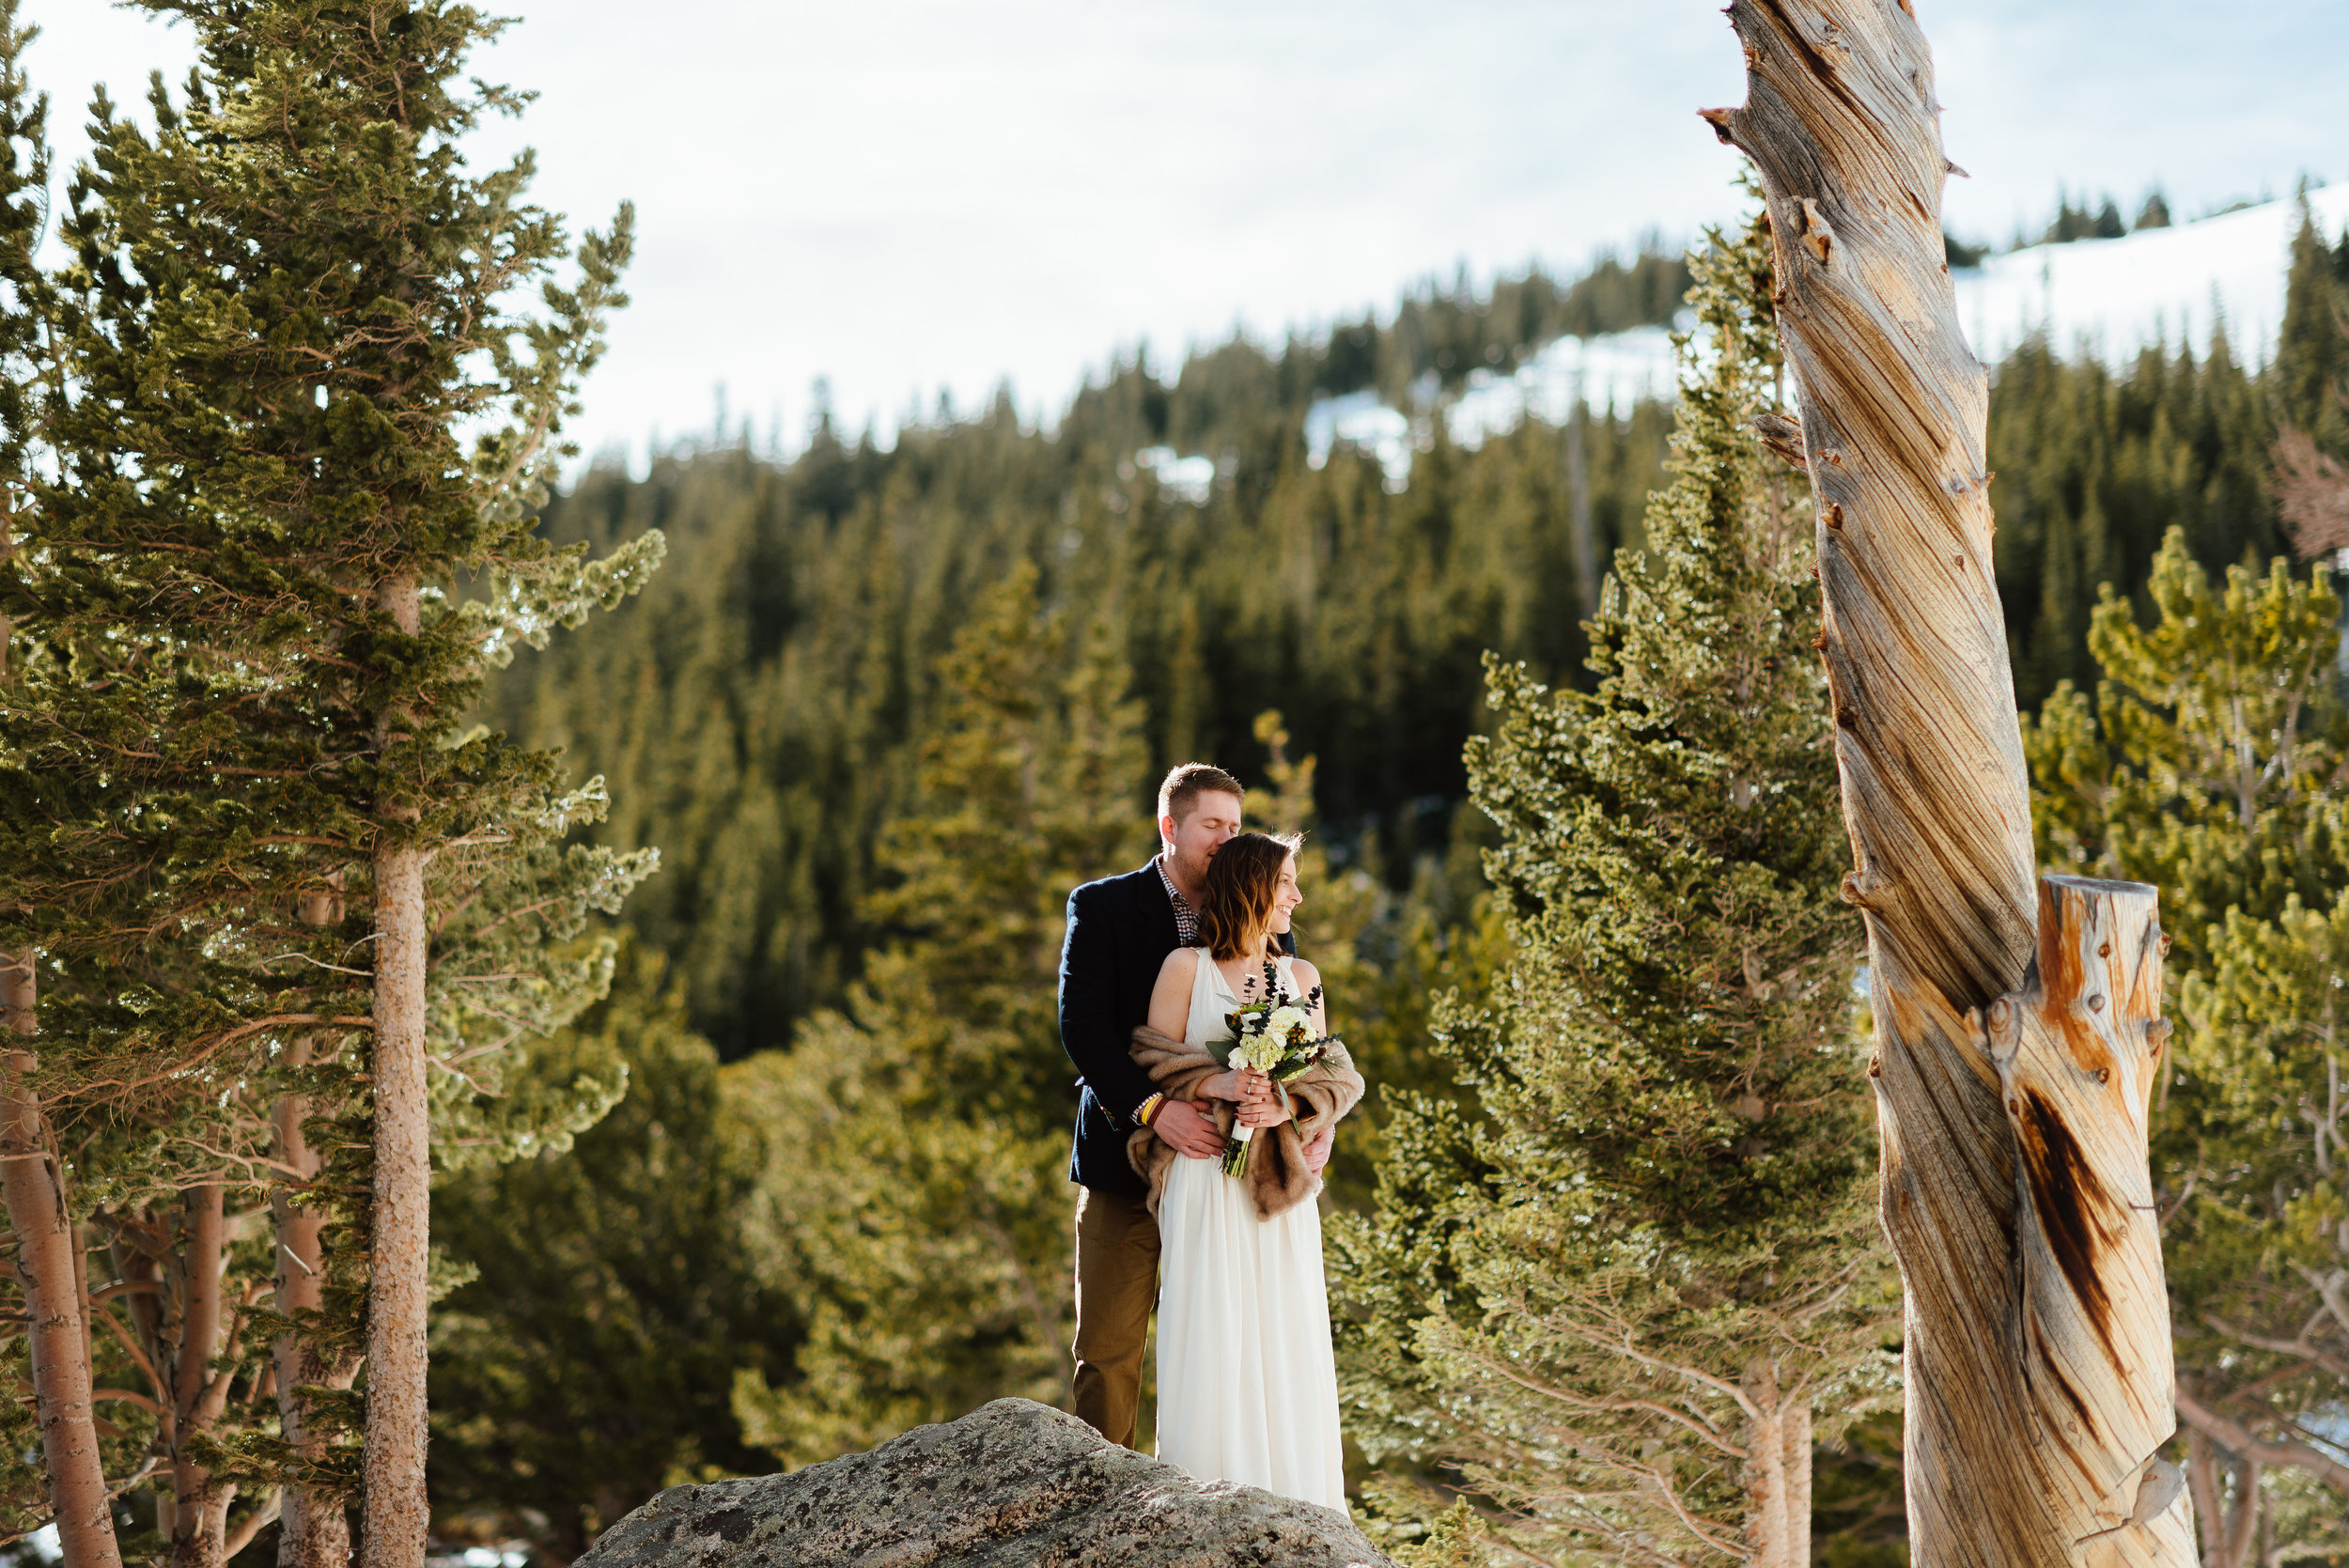 Kelsie and Tyler had such an intimate, mountain elopement nestled in the trees surrounding St. Mary's Glacier. I want to get married in Idaho Springs, Colorado's gorgeous mountain scenery!|Intimate elopement photos by mountain wedding photographer, Maddie Mae.